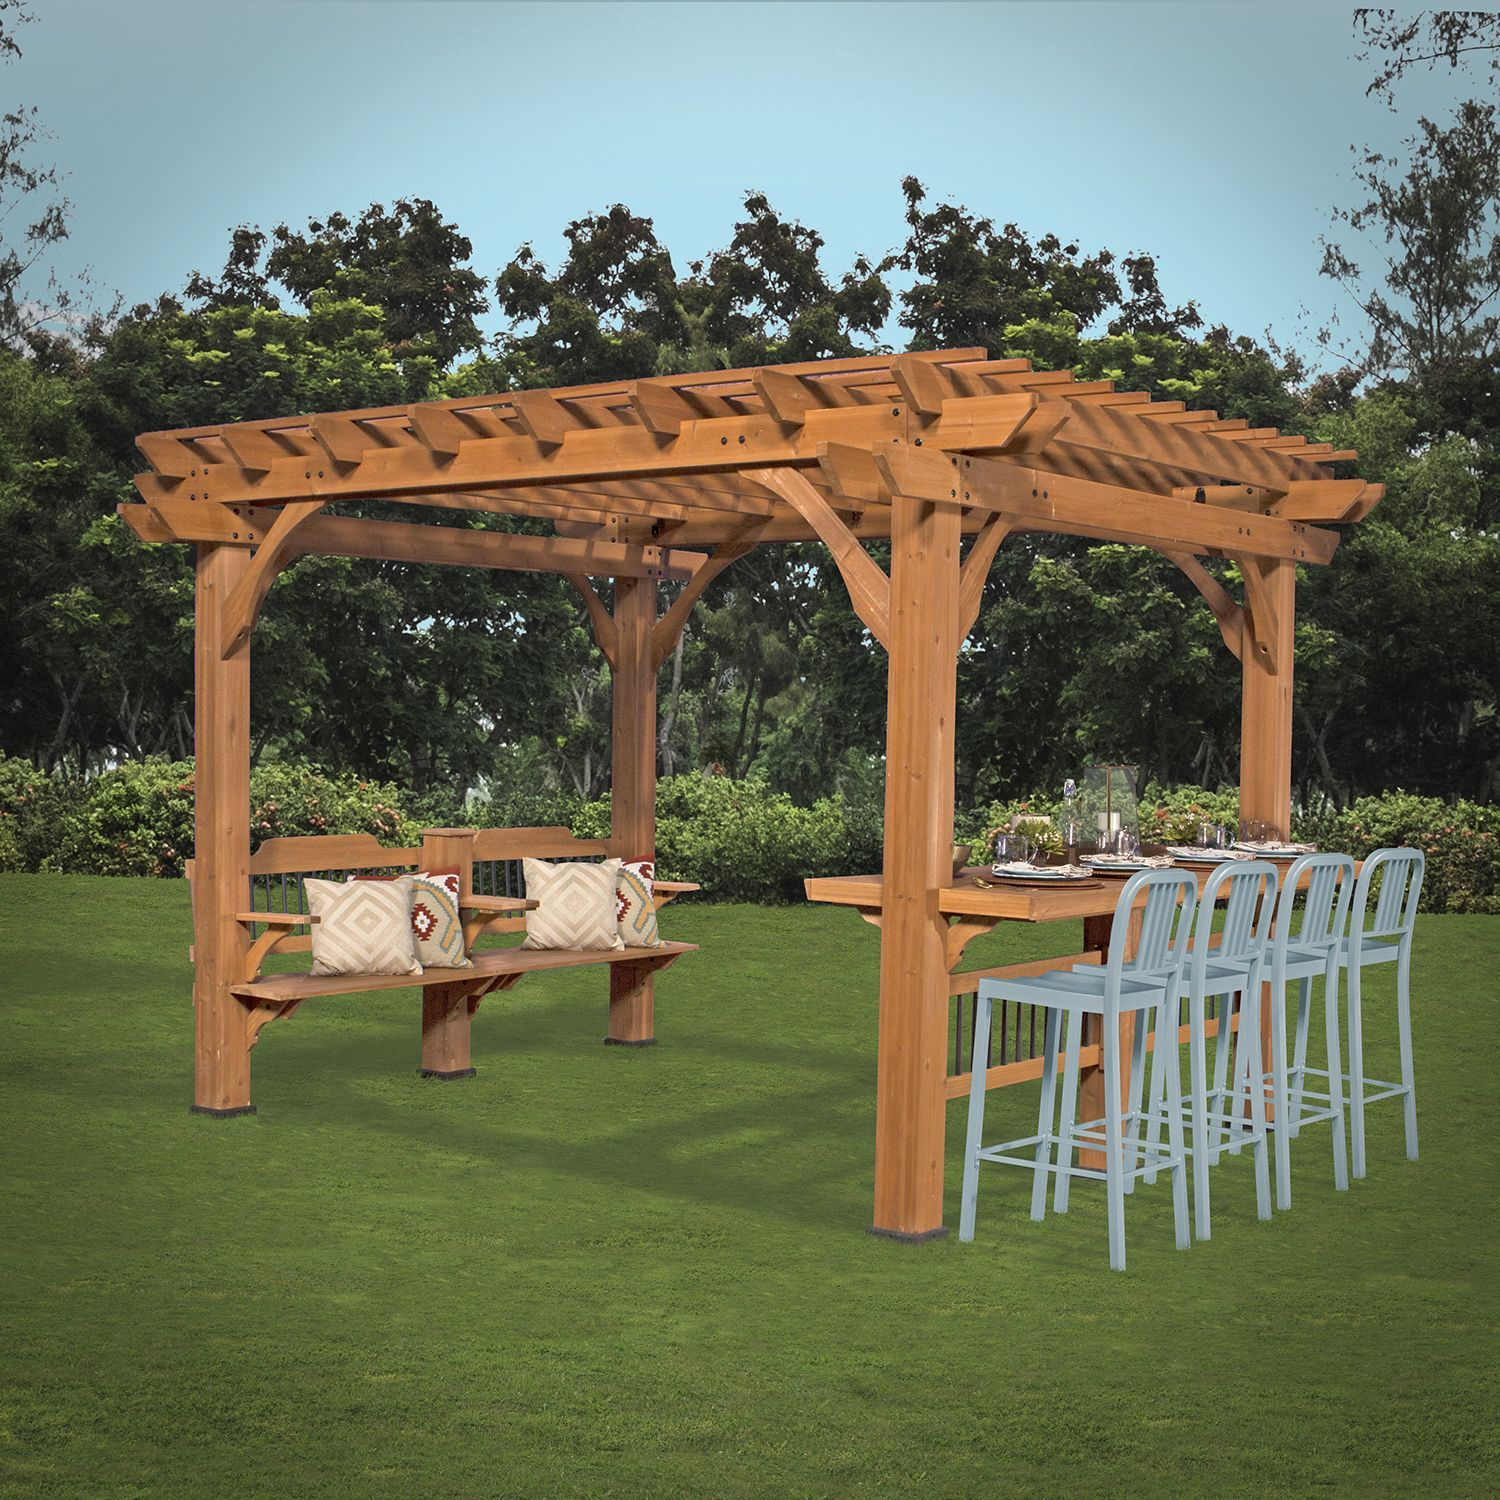 Sam S Club Gazebo Swing Gazebo Hot Tub Gazebo Large Gazebo